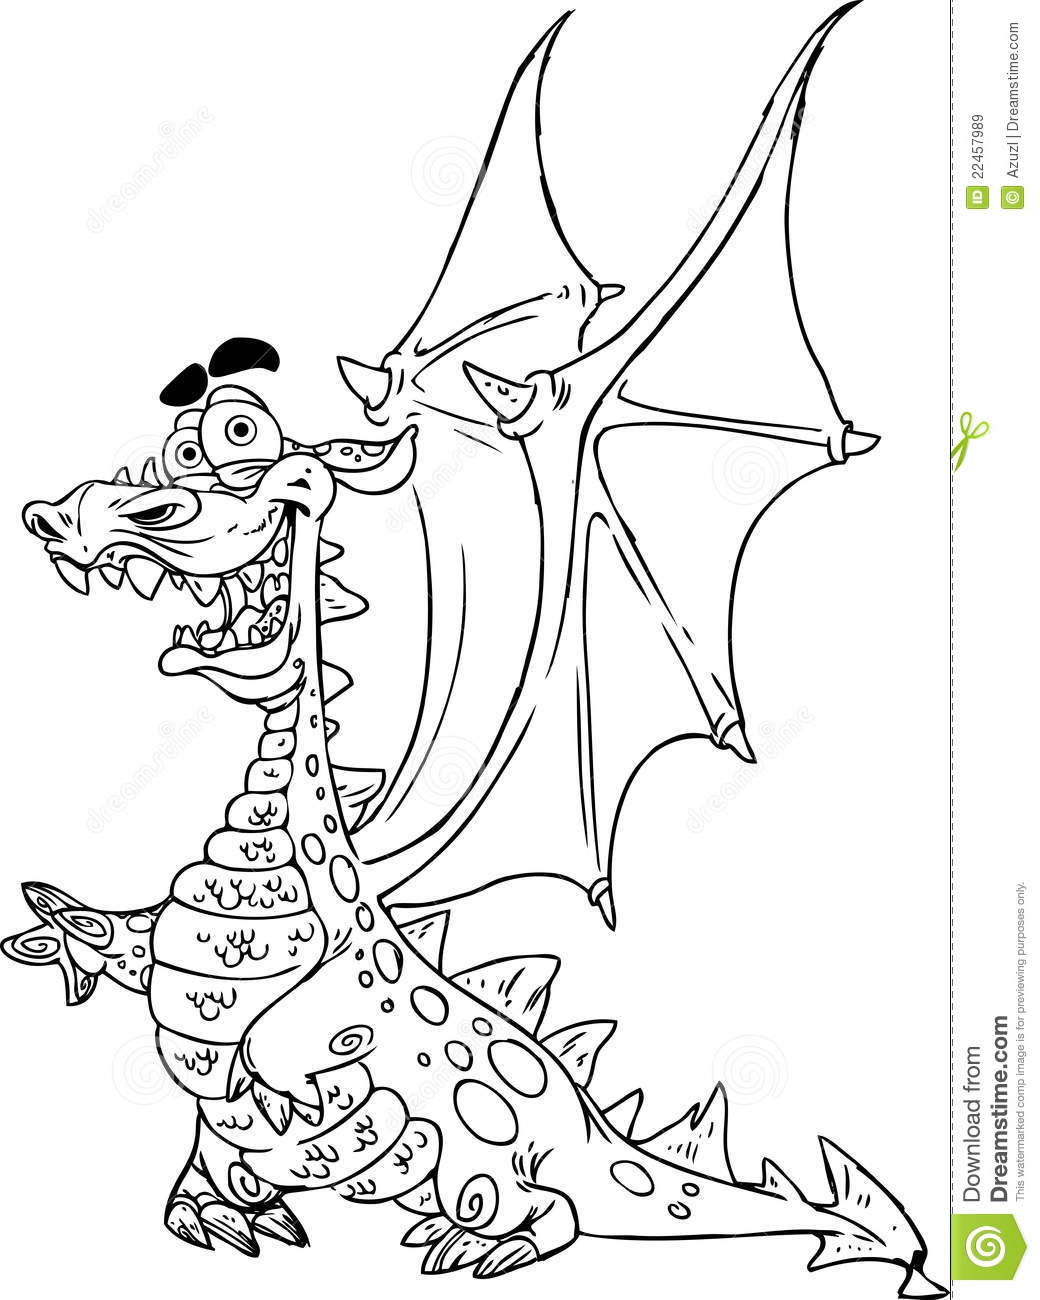 fairytale dragon black outline for coloring royalty free stock